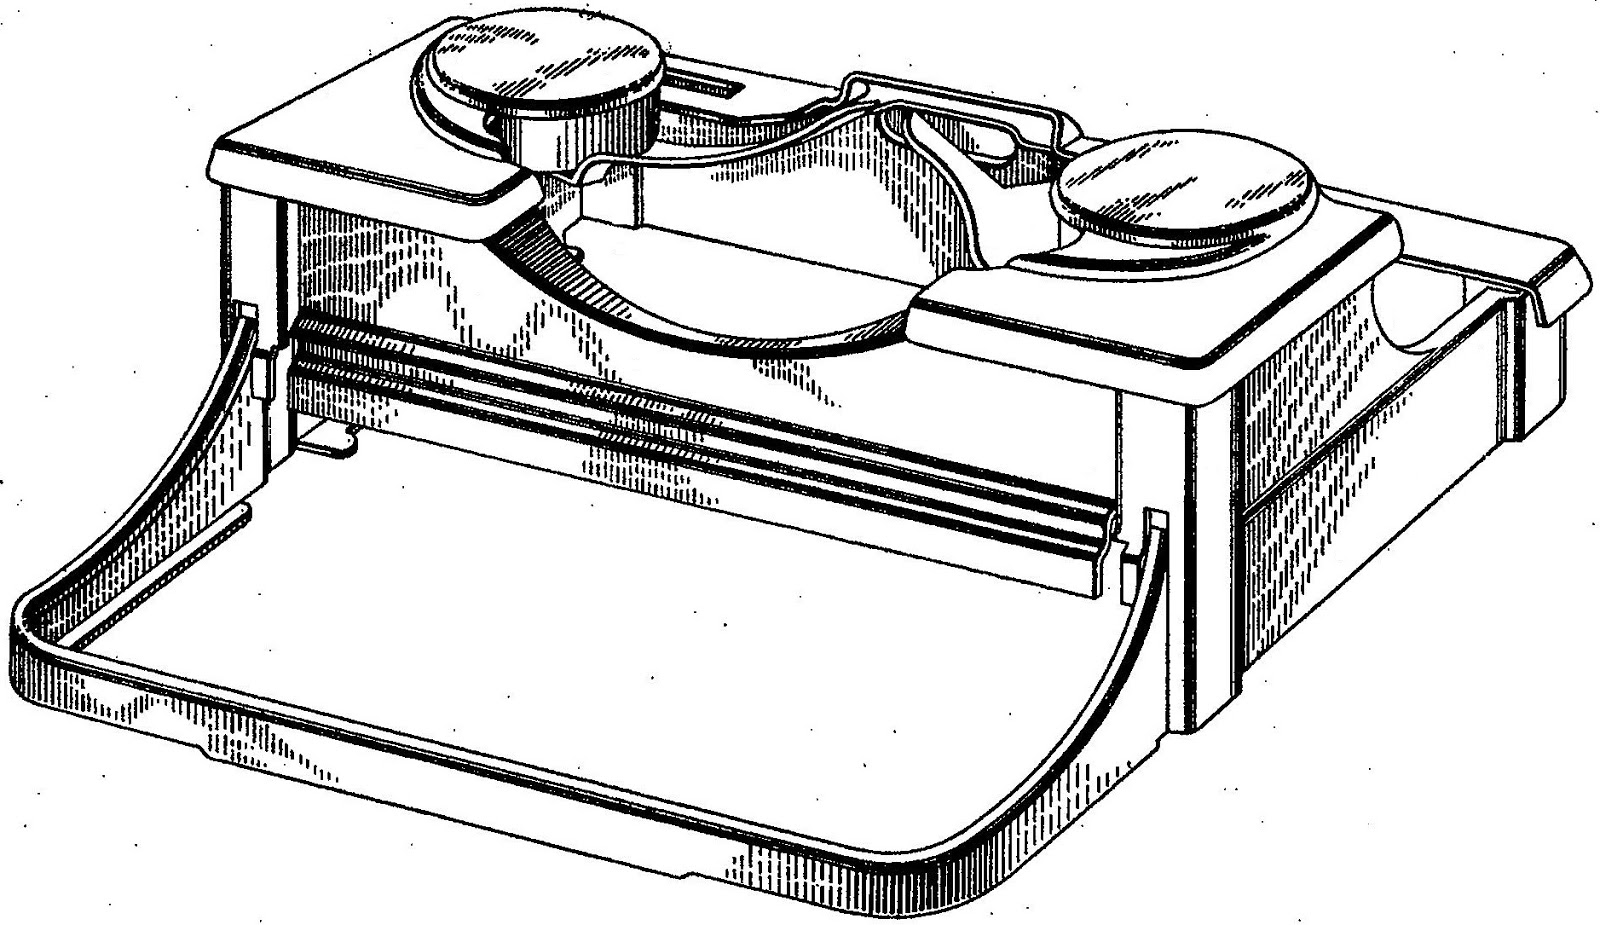 oz.Typewriter: On This Day in Typewriter History: Designs